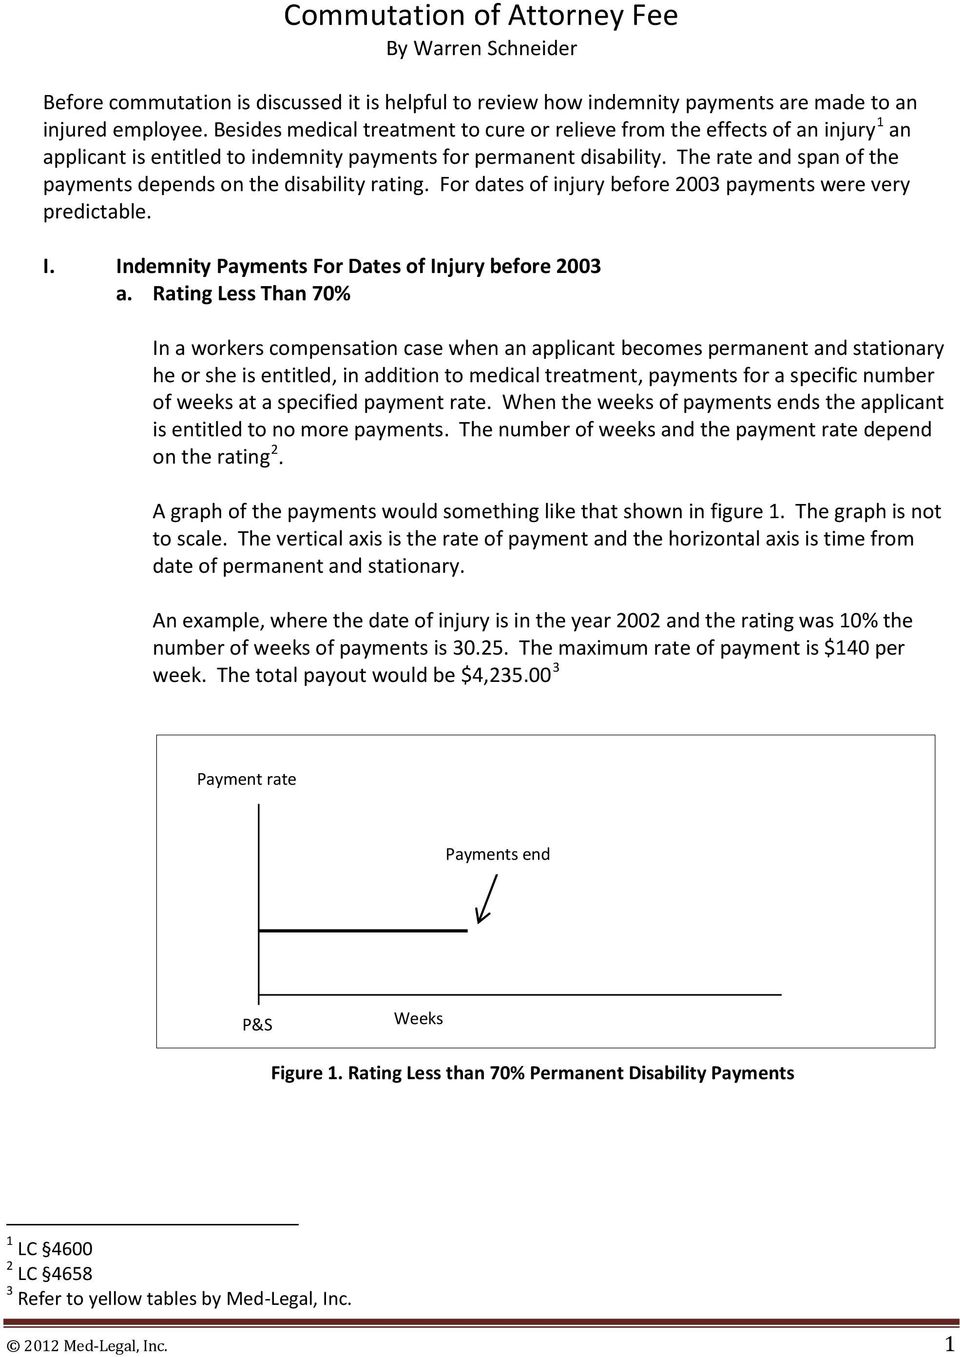 The rate and span of the payments depends on the disability rating. For dates of injury before 2003 payments were very predictable. I. Indemnity Payments For Dates of Injury before 2003 a.